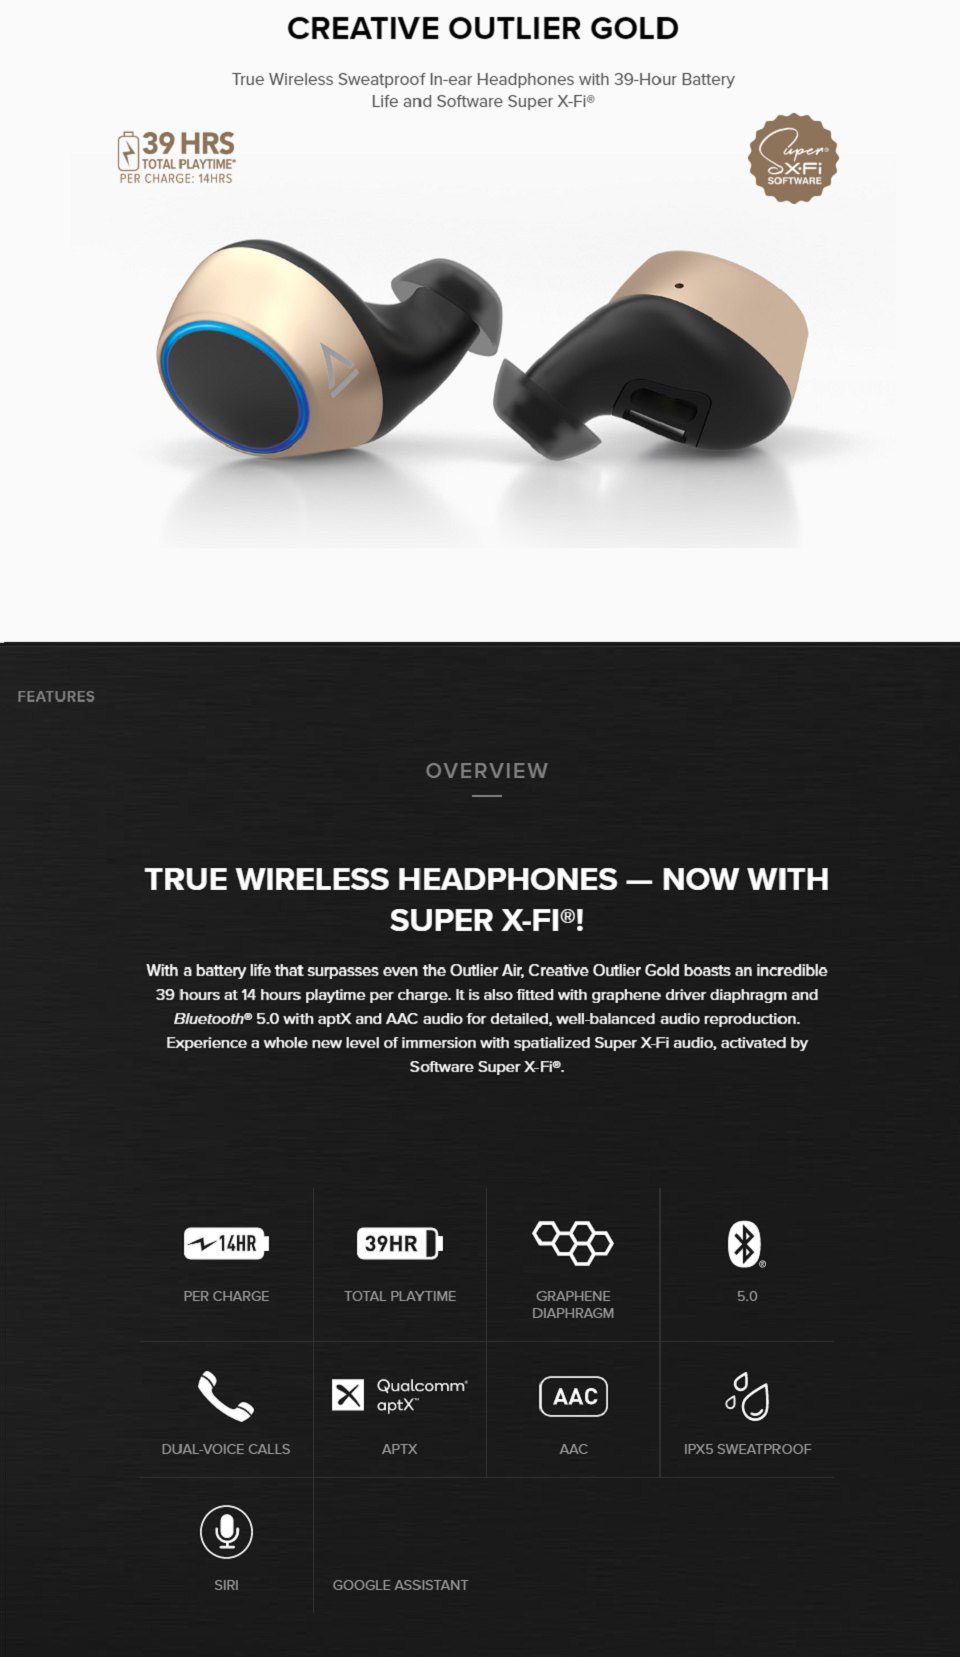 Creative Outlier Gold True Wireless In-Ear Headphones features